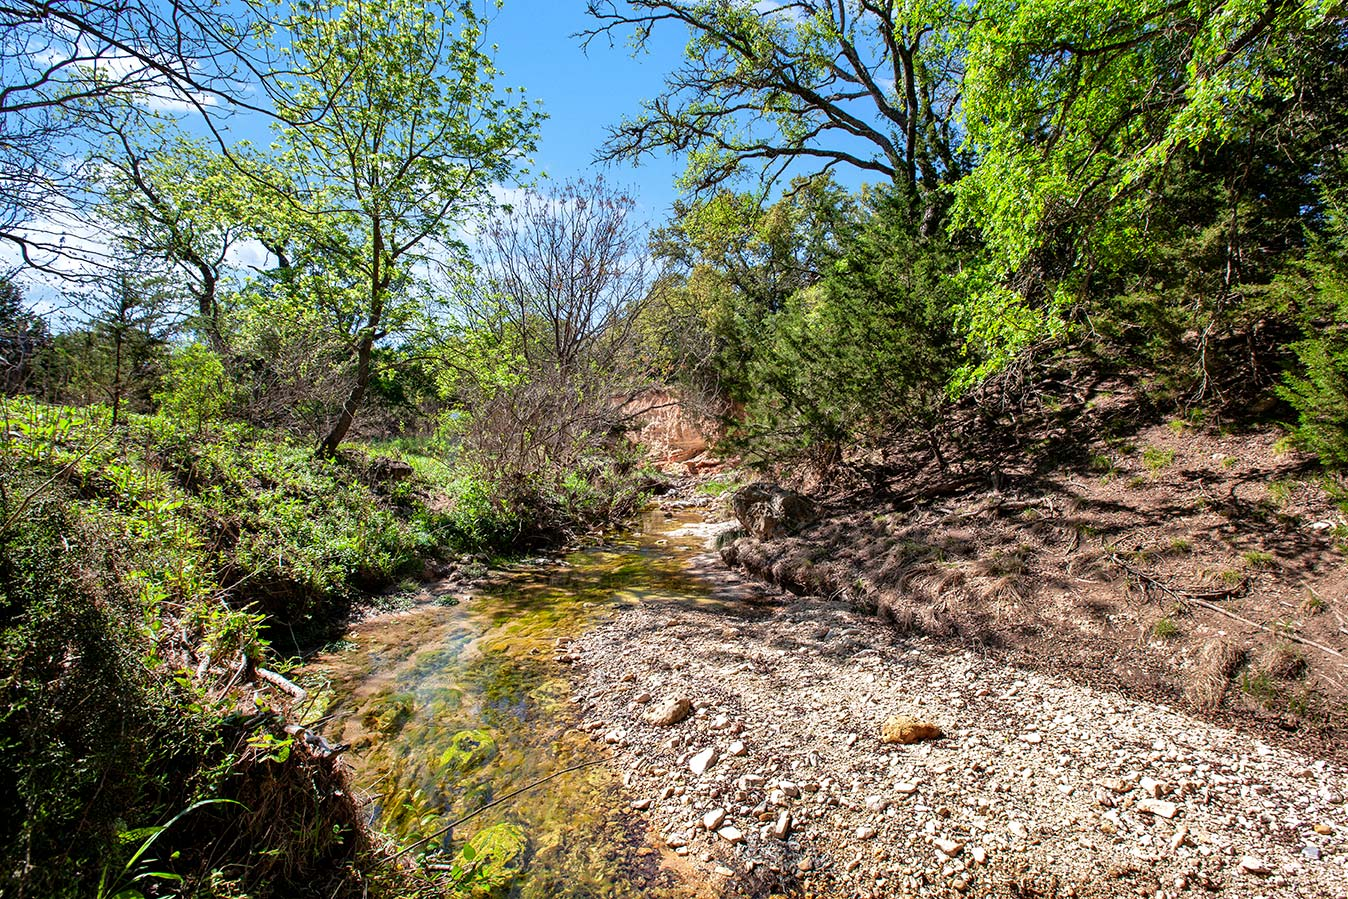 fredericksburg-realty-squaw-creek-ranch-real-estate-land-for-sale-home-house-historic-2.jpg